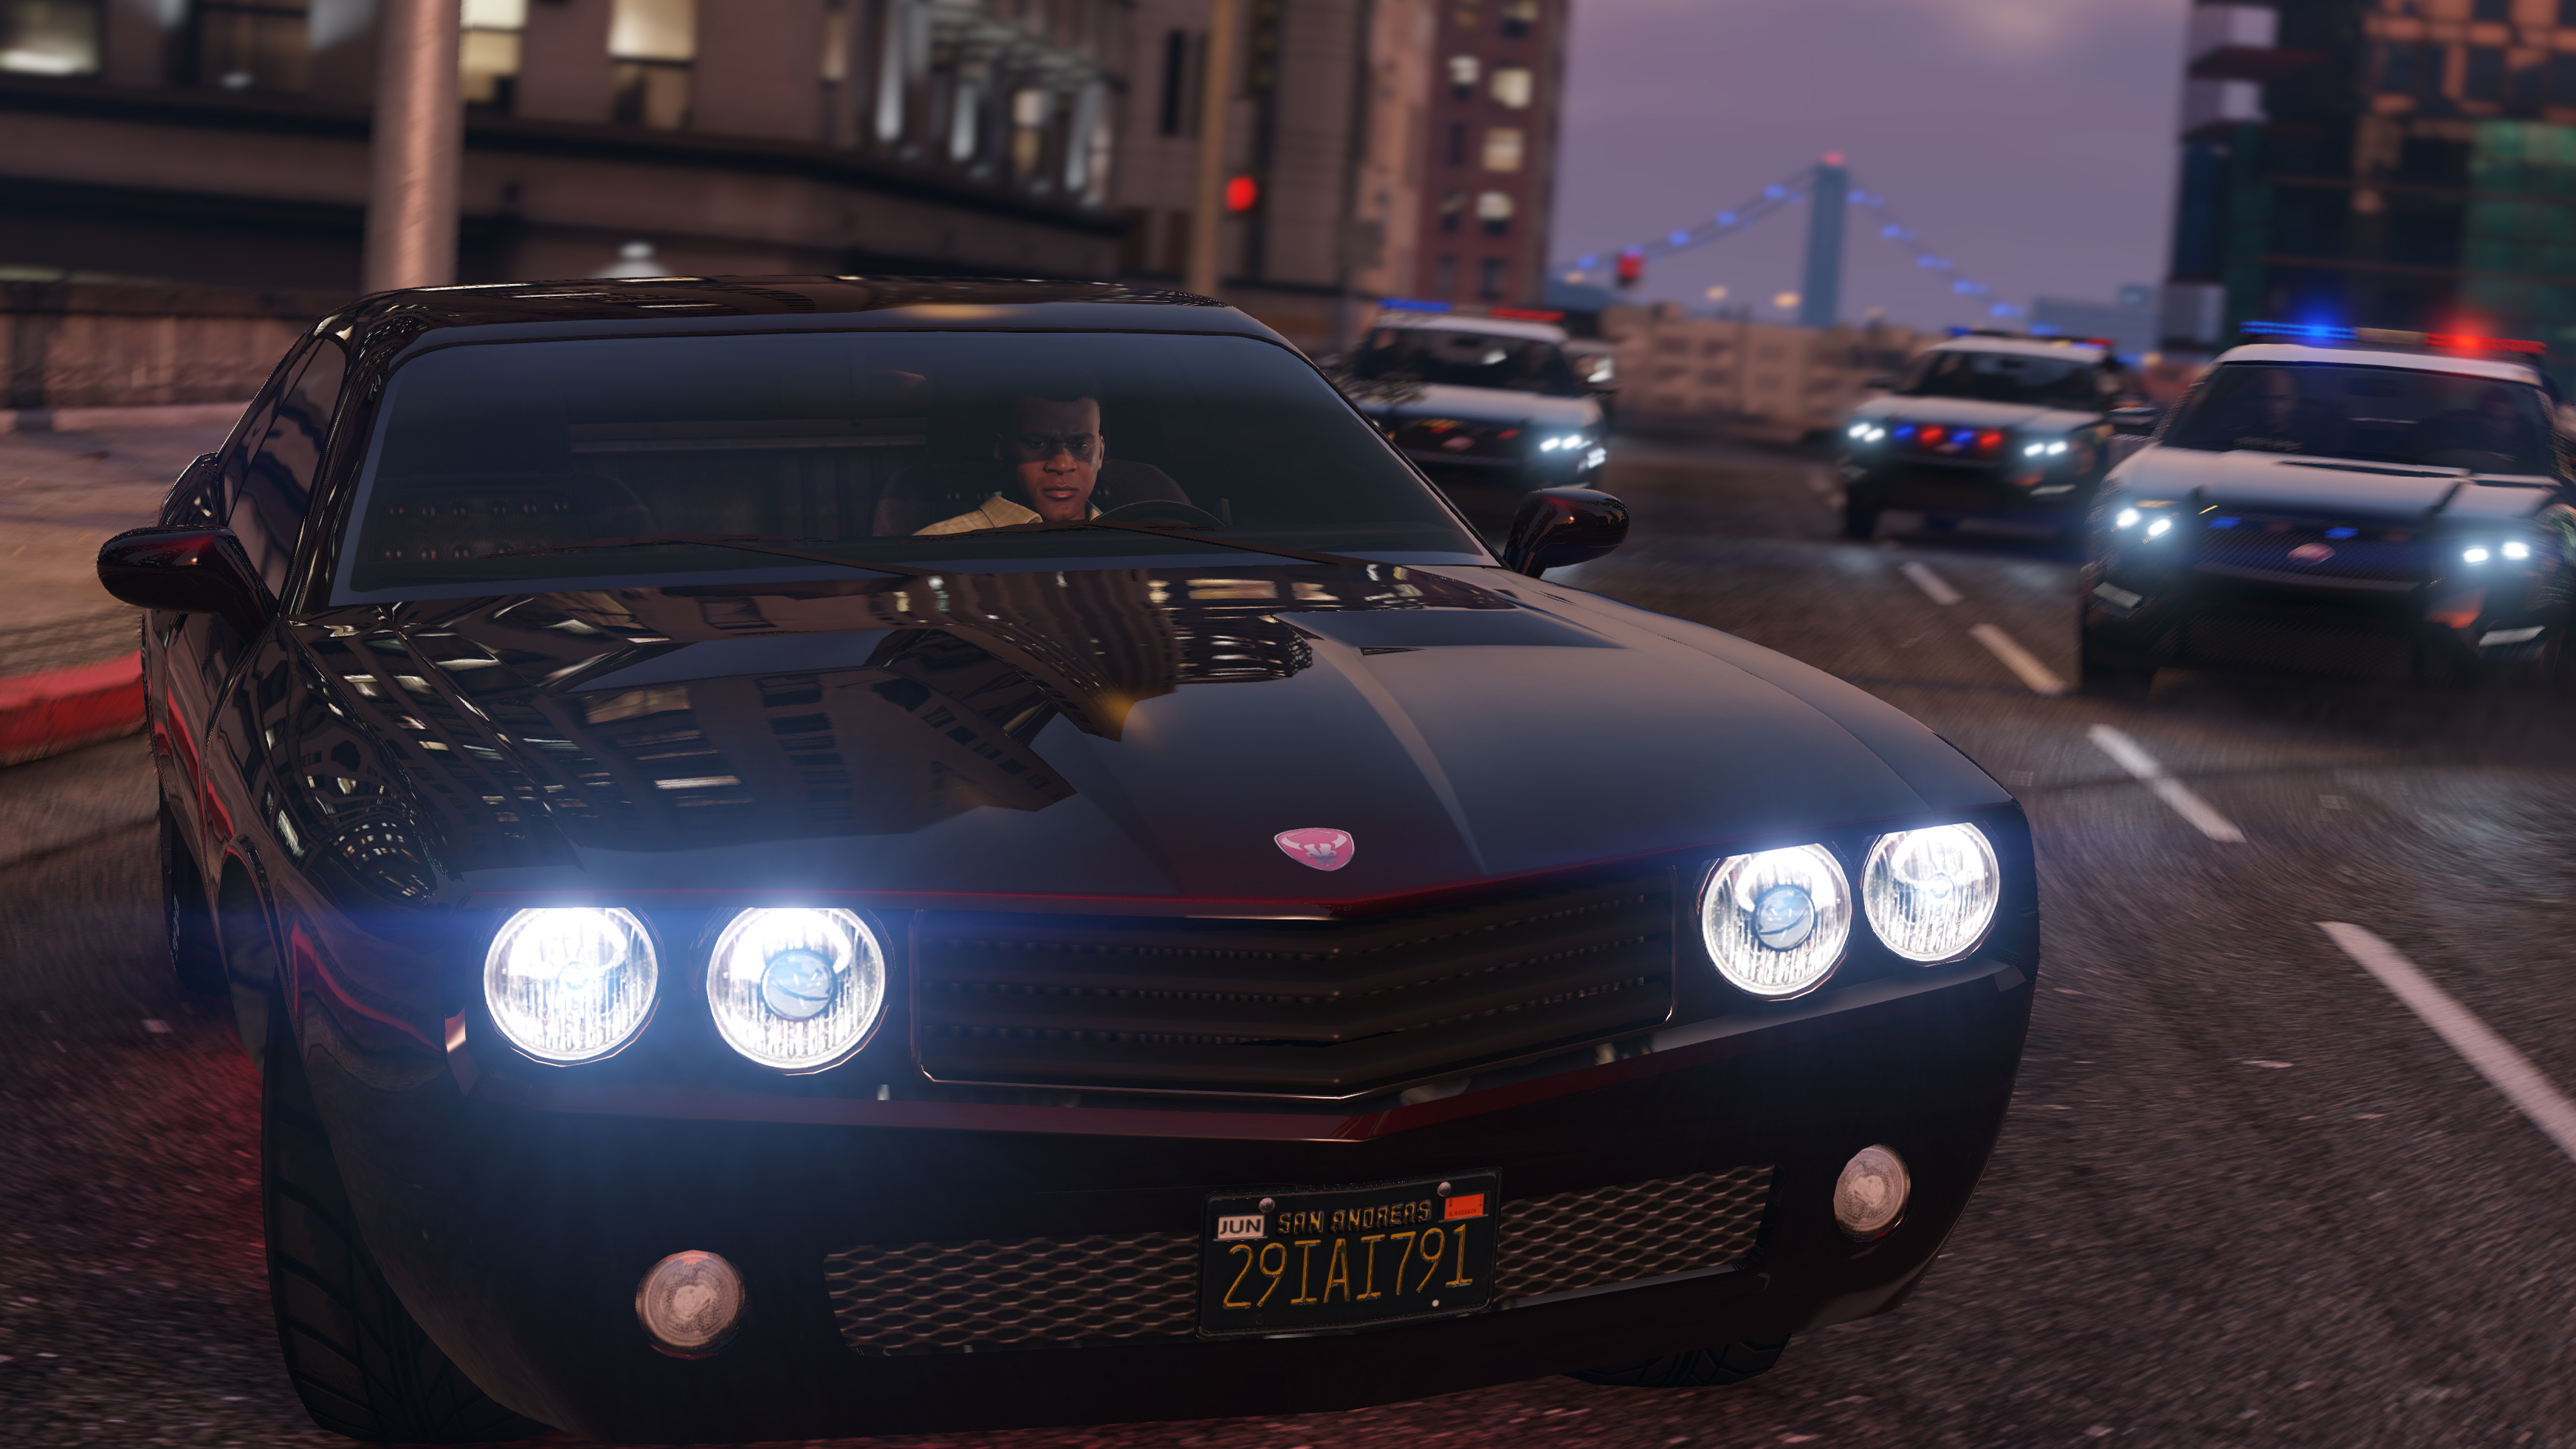 GTA 6 publisher hints we won't see the game any time soon